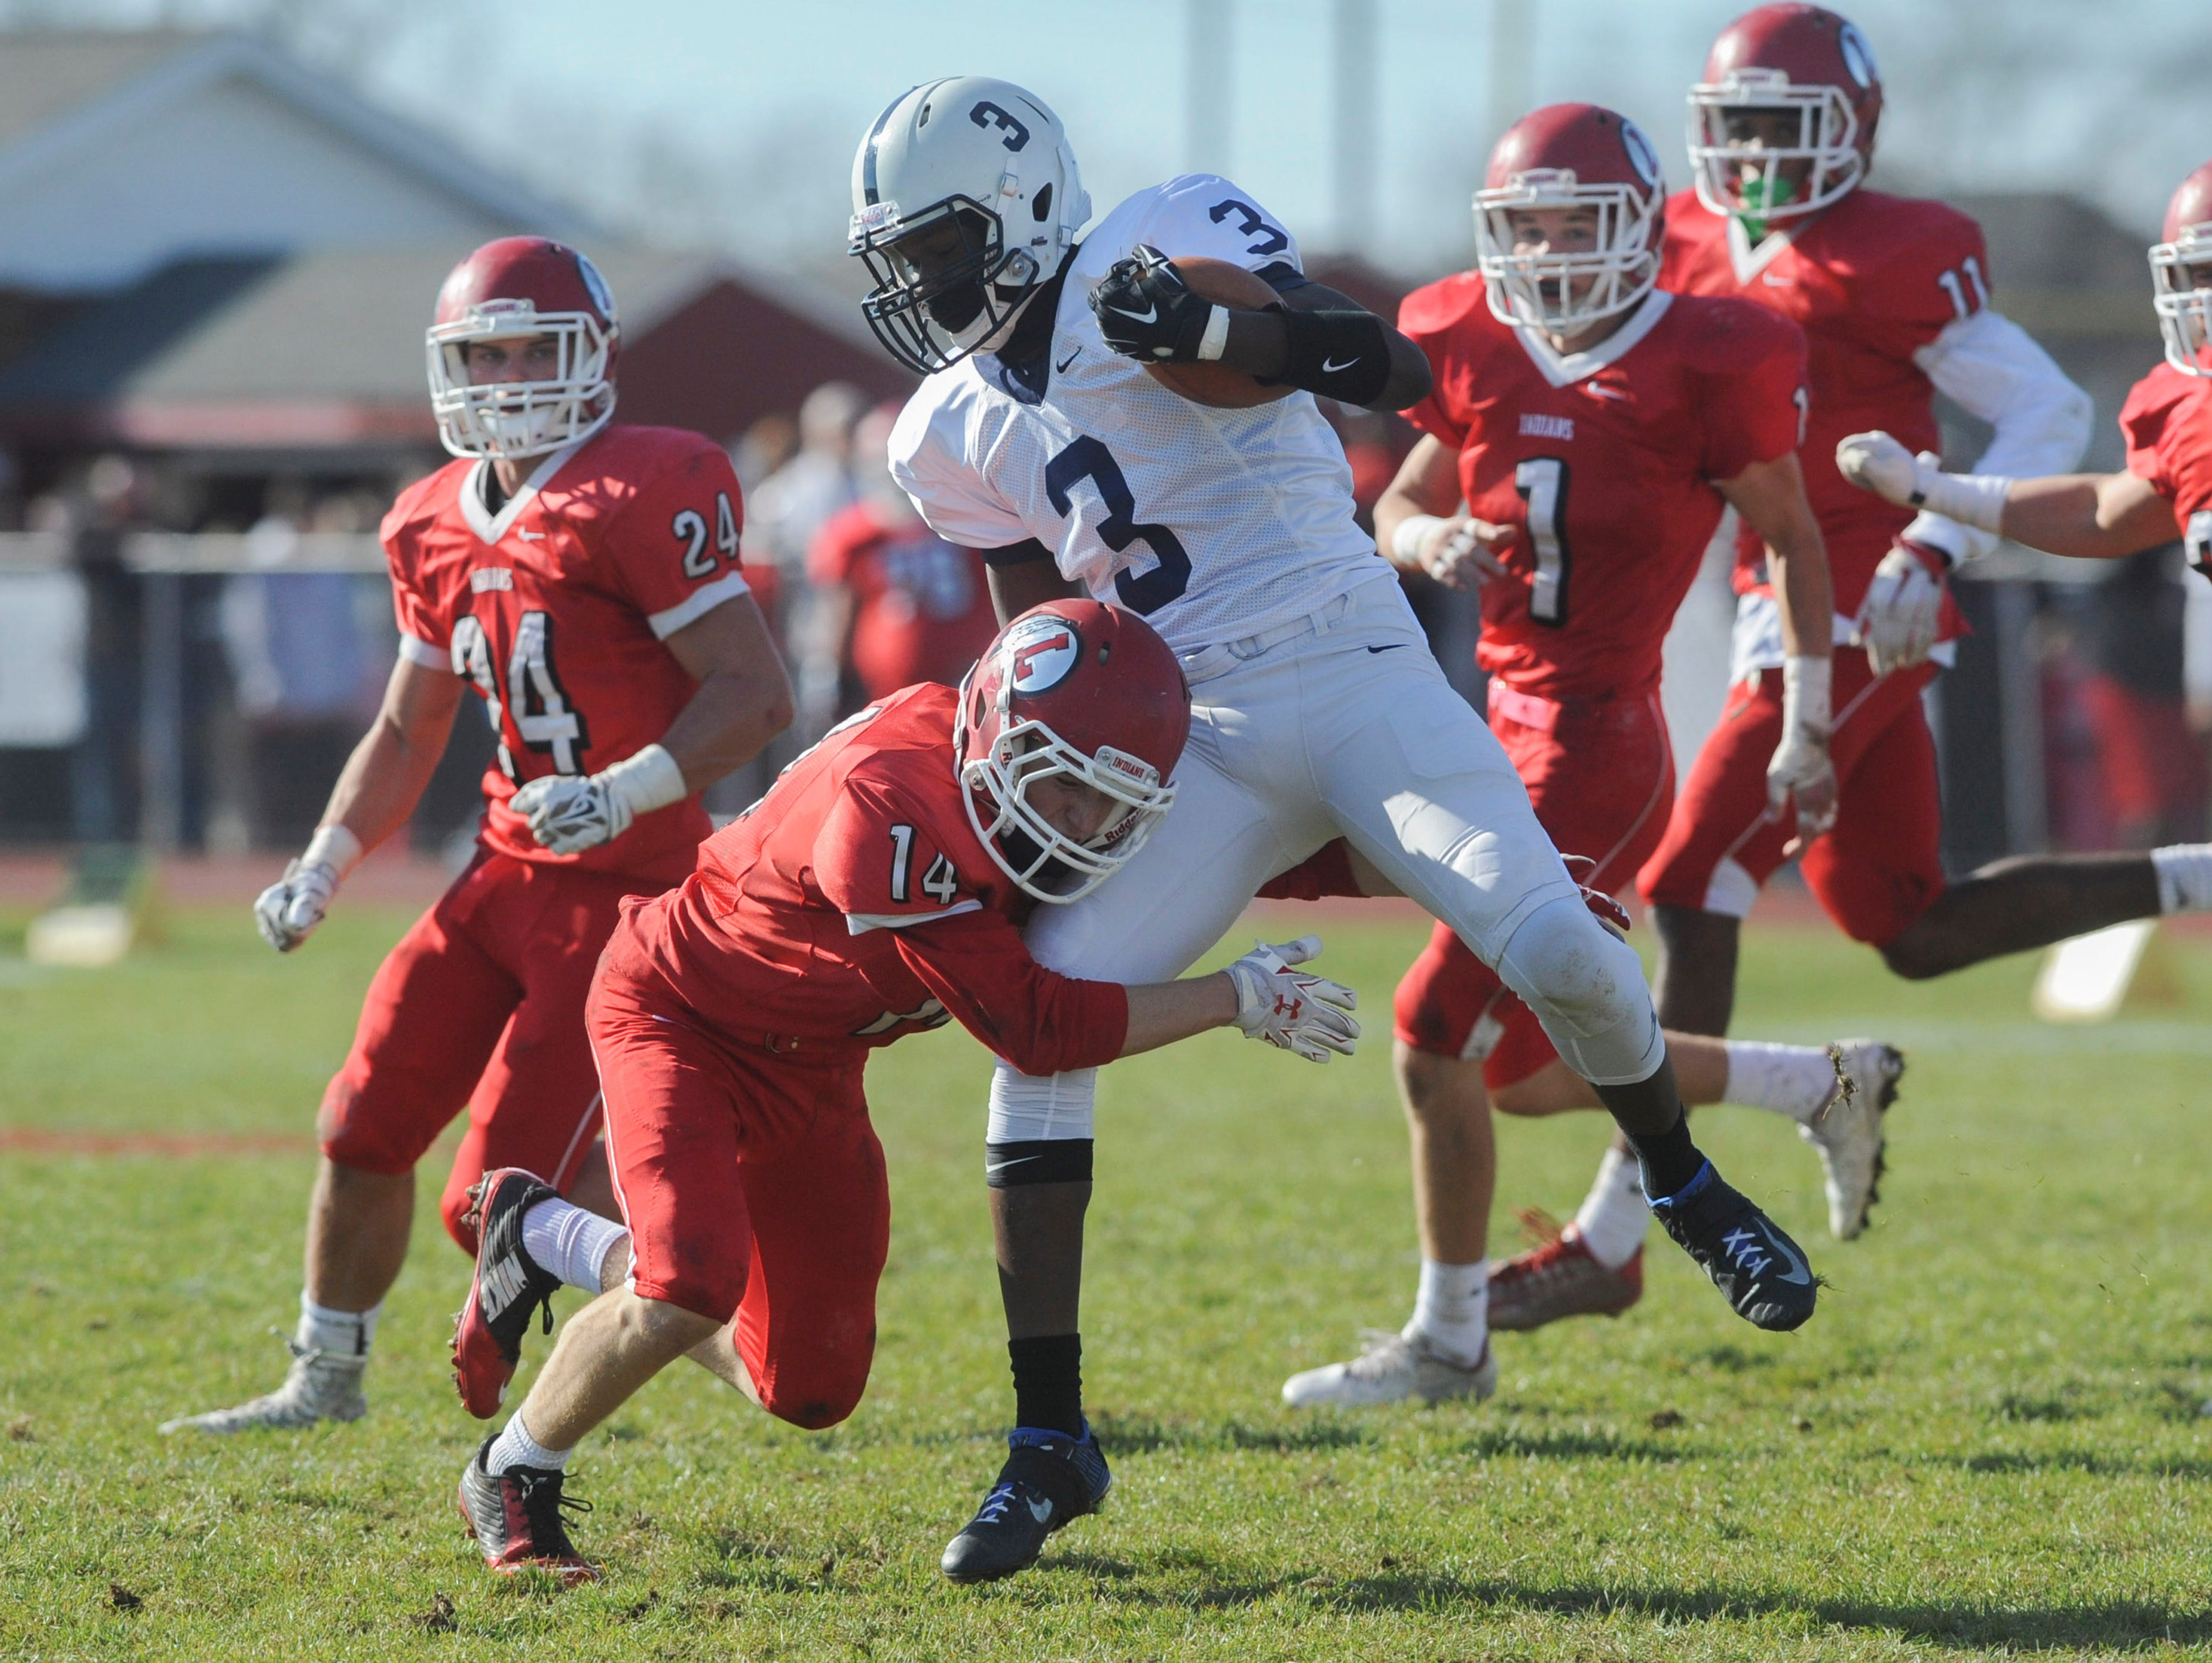 Lenape's Mike Doulong tackles Shawnee's Daevon Robinson during Thursday's Thanksgiving Day football game at Lenape. Thursday, November 26, 2015.